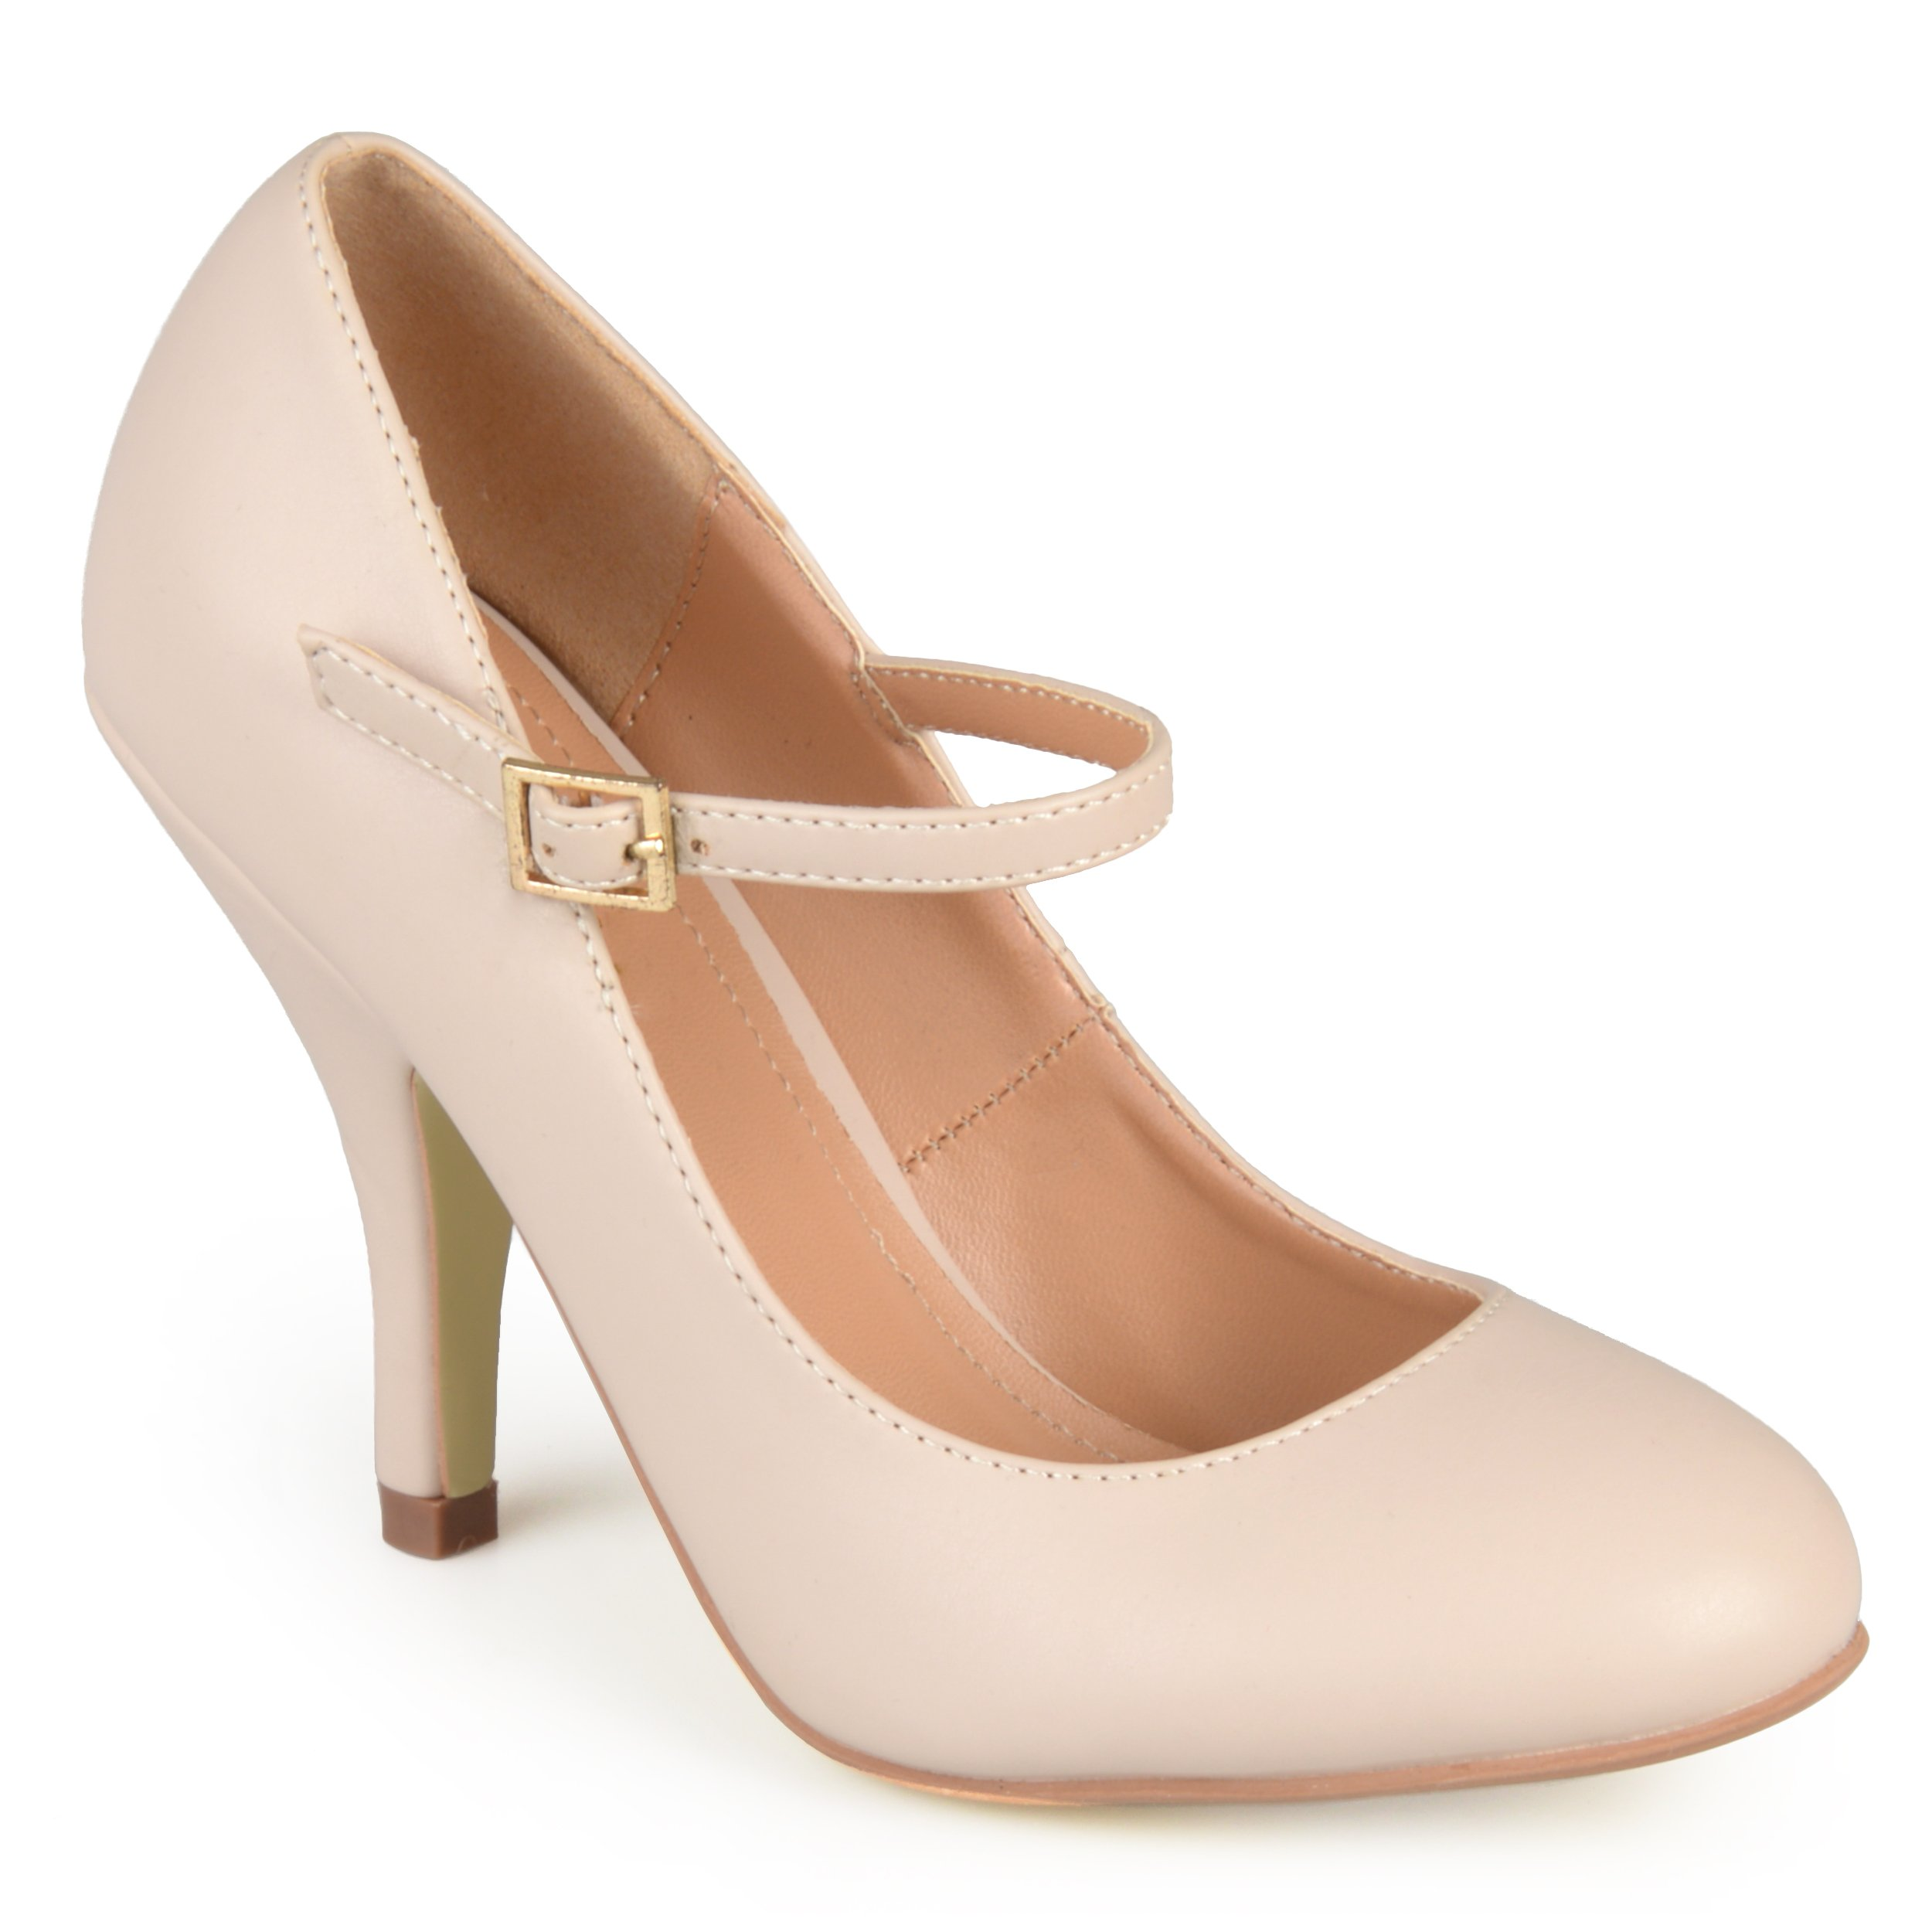 Journee Collection Womens Mary Jane Matte Finish Pumps Nude, 6 Regular US